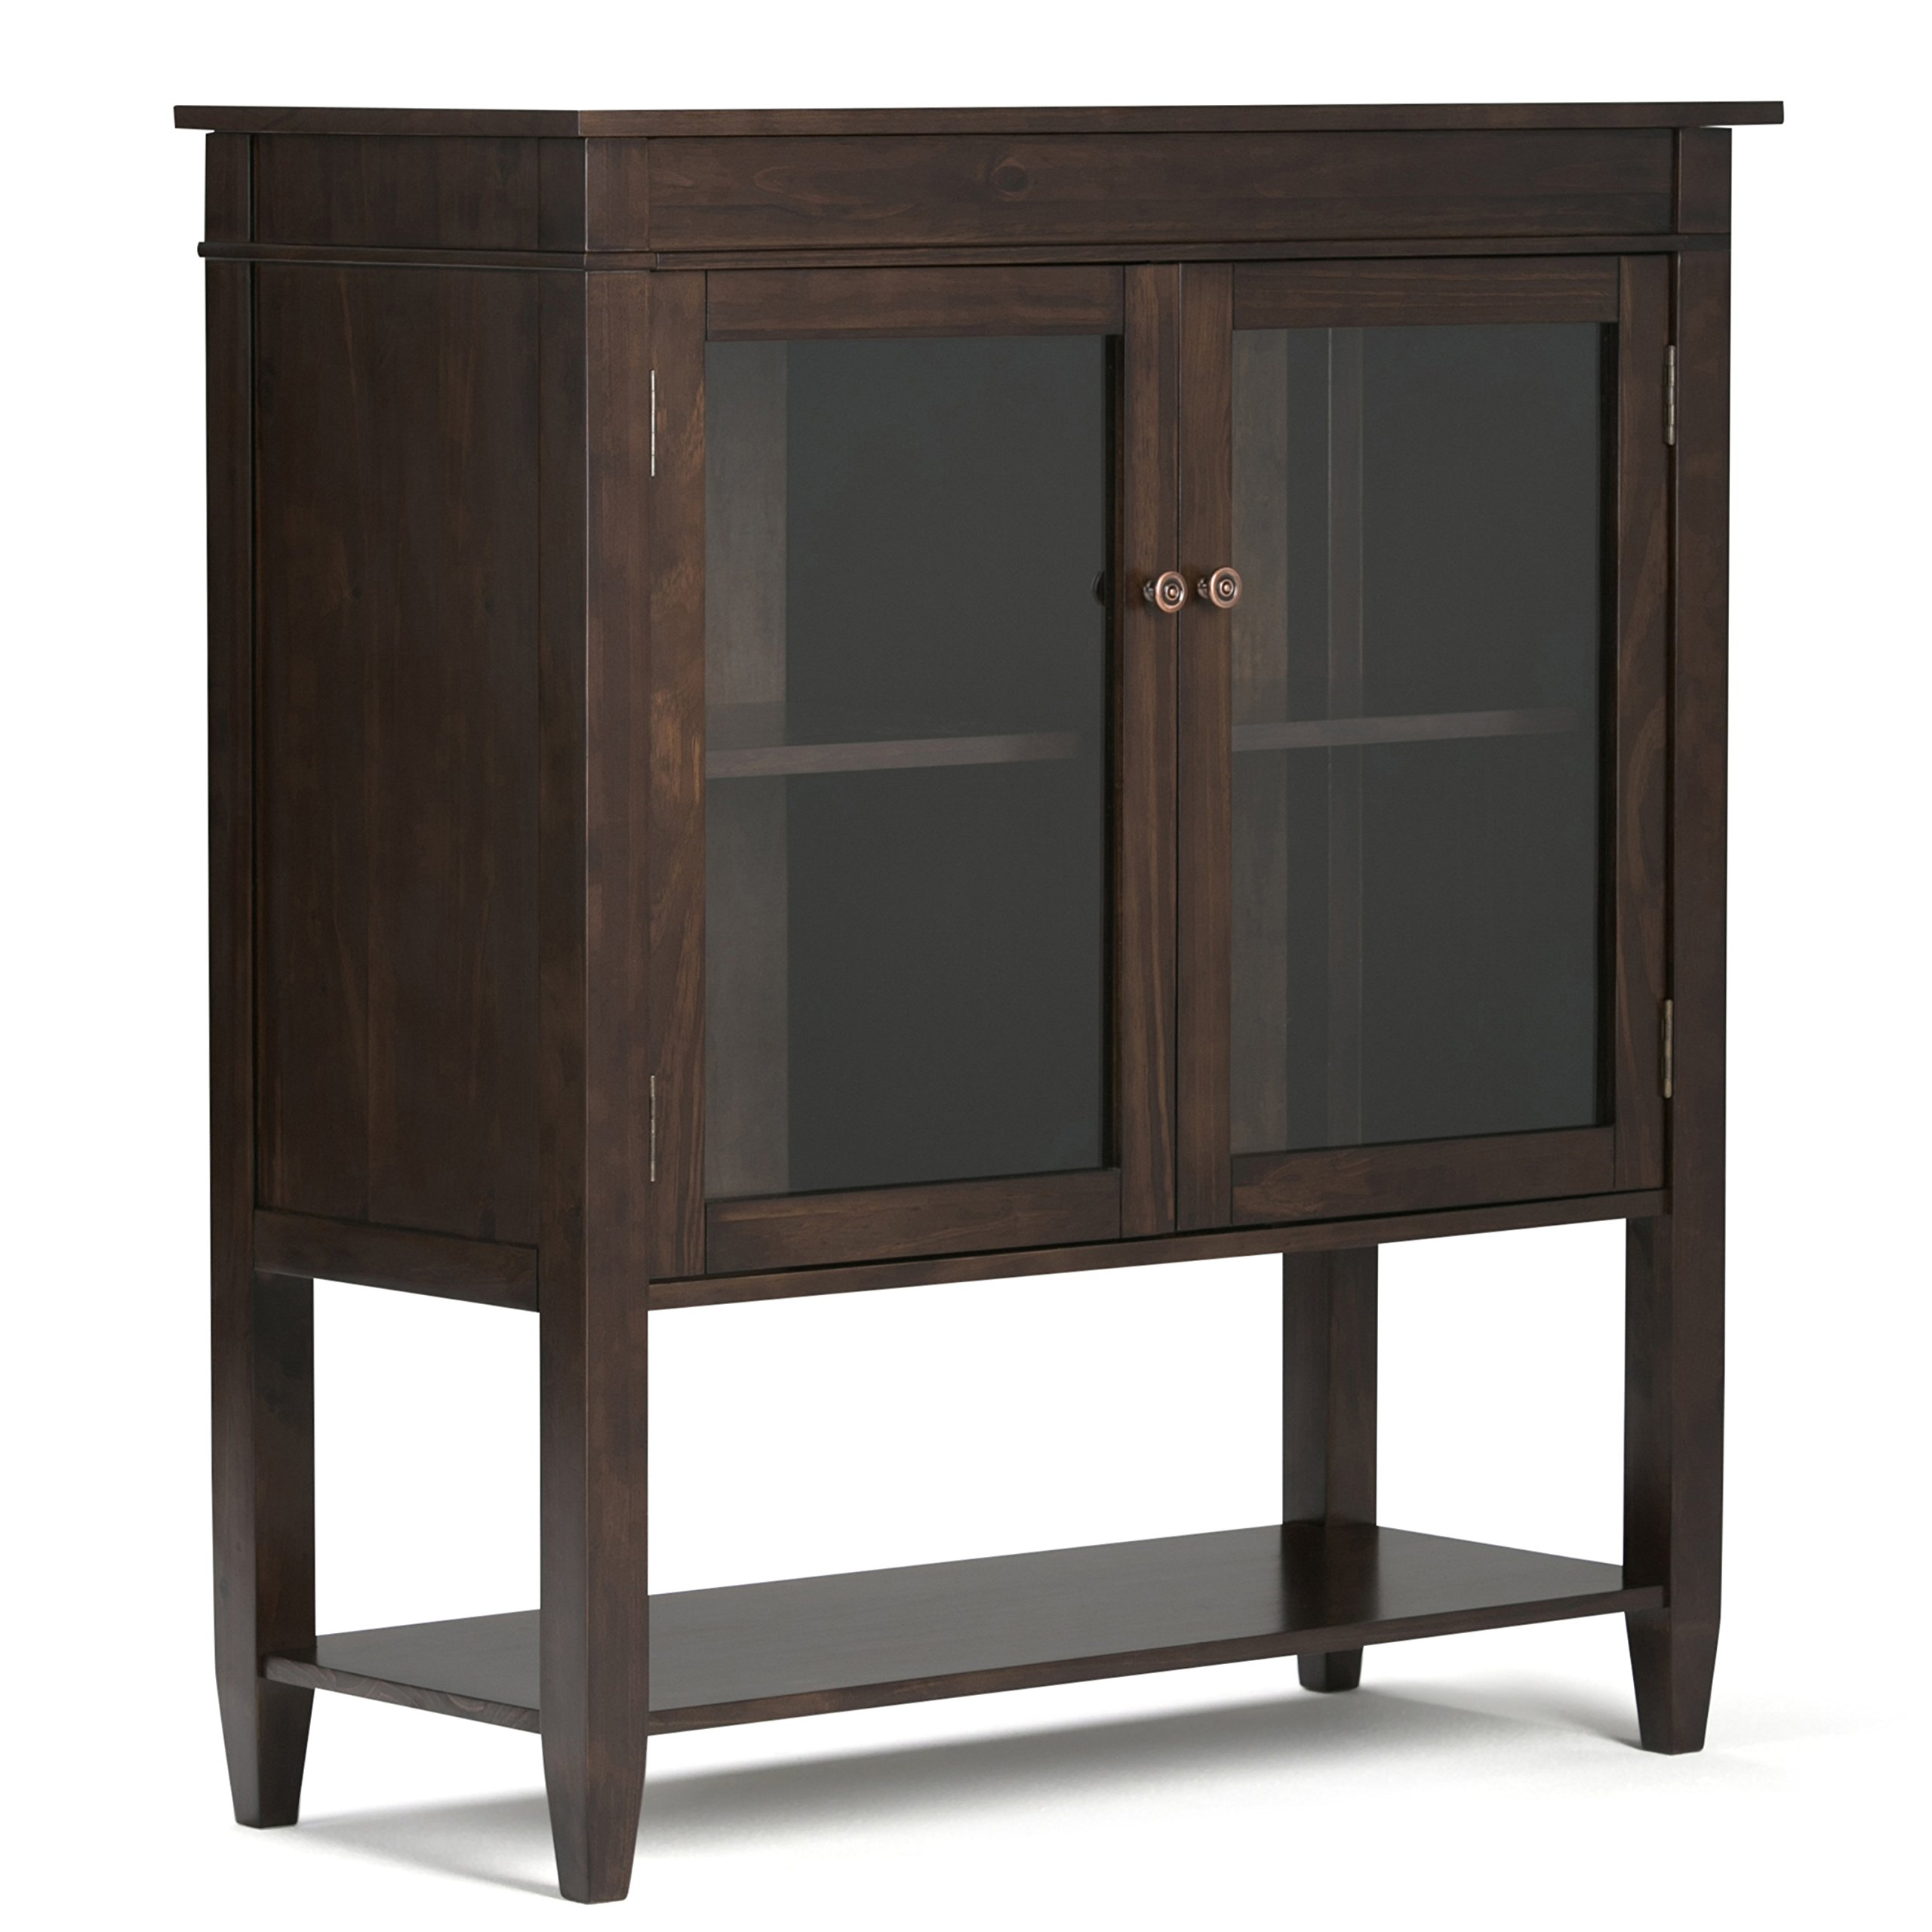 Simpli Home Carlton Medium Storage Cabinet, Dark Tobacco Brown